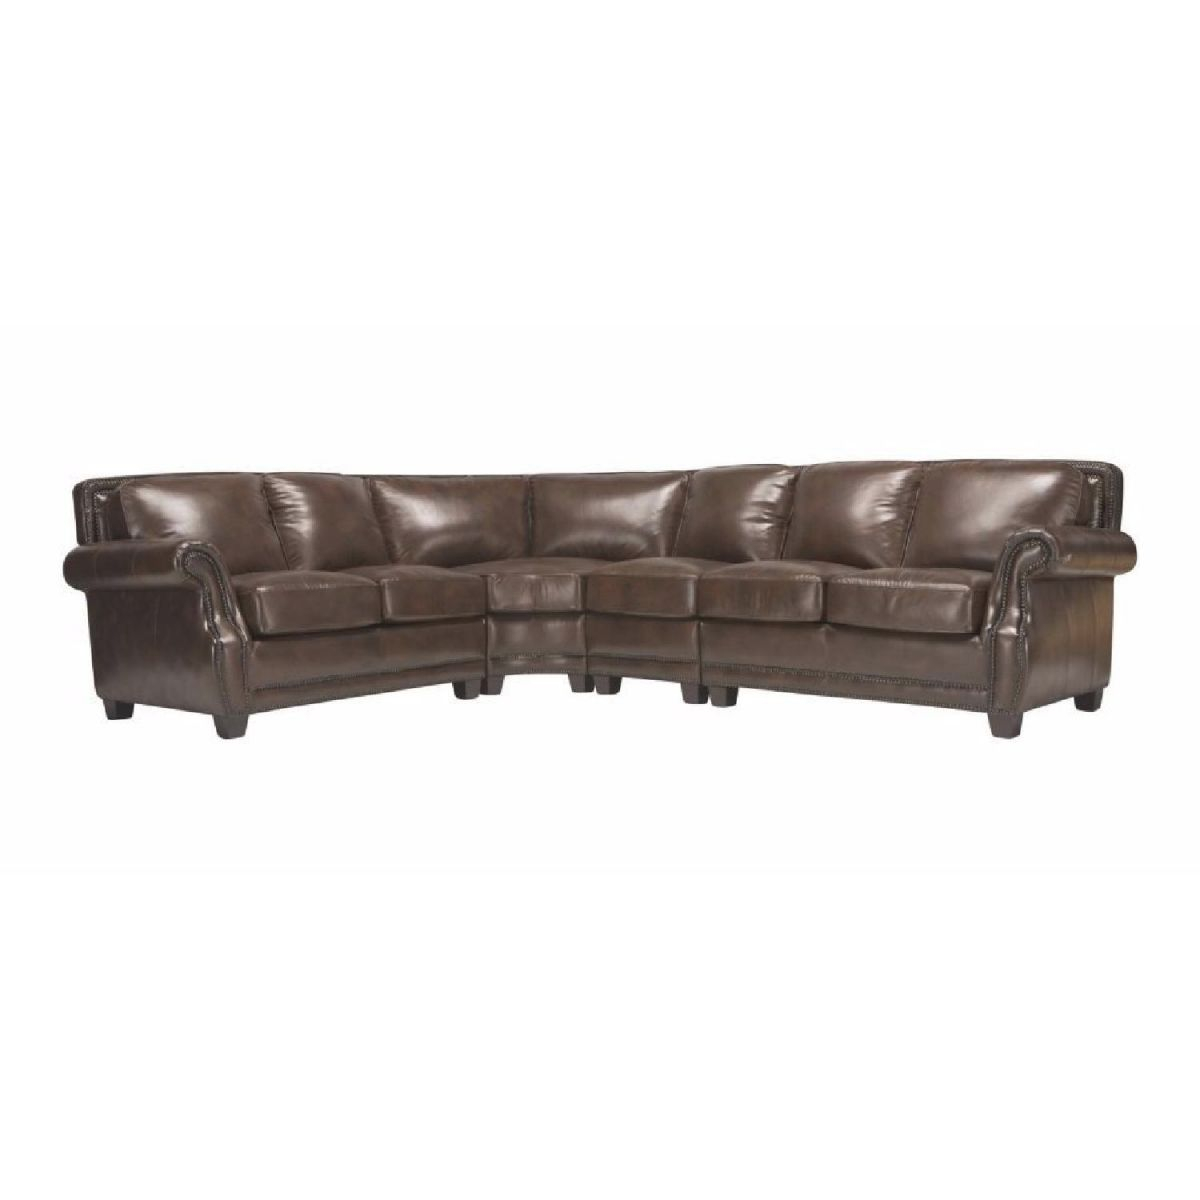 Picture of: 25 Inspirational Sectional Sleeper Sofa Raymour Flanigan Intended For Lovely Raymour And Flanigan Sleeper Sofa Awesome Decors